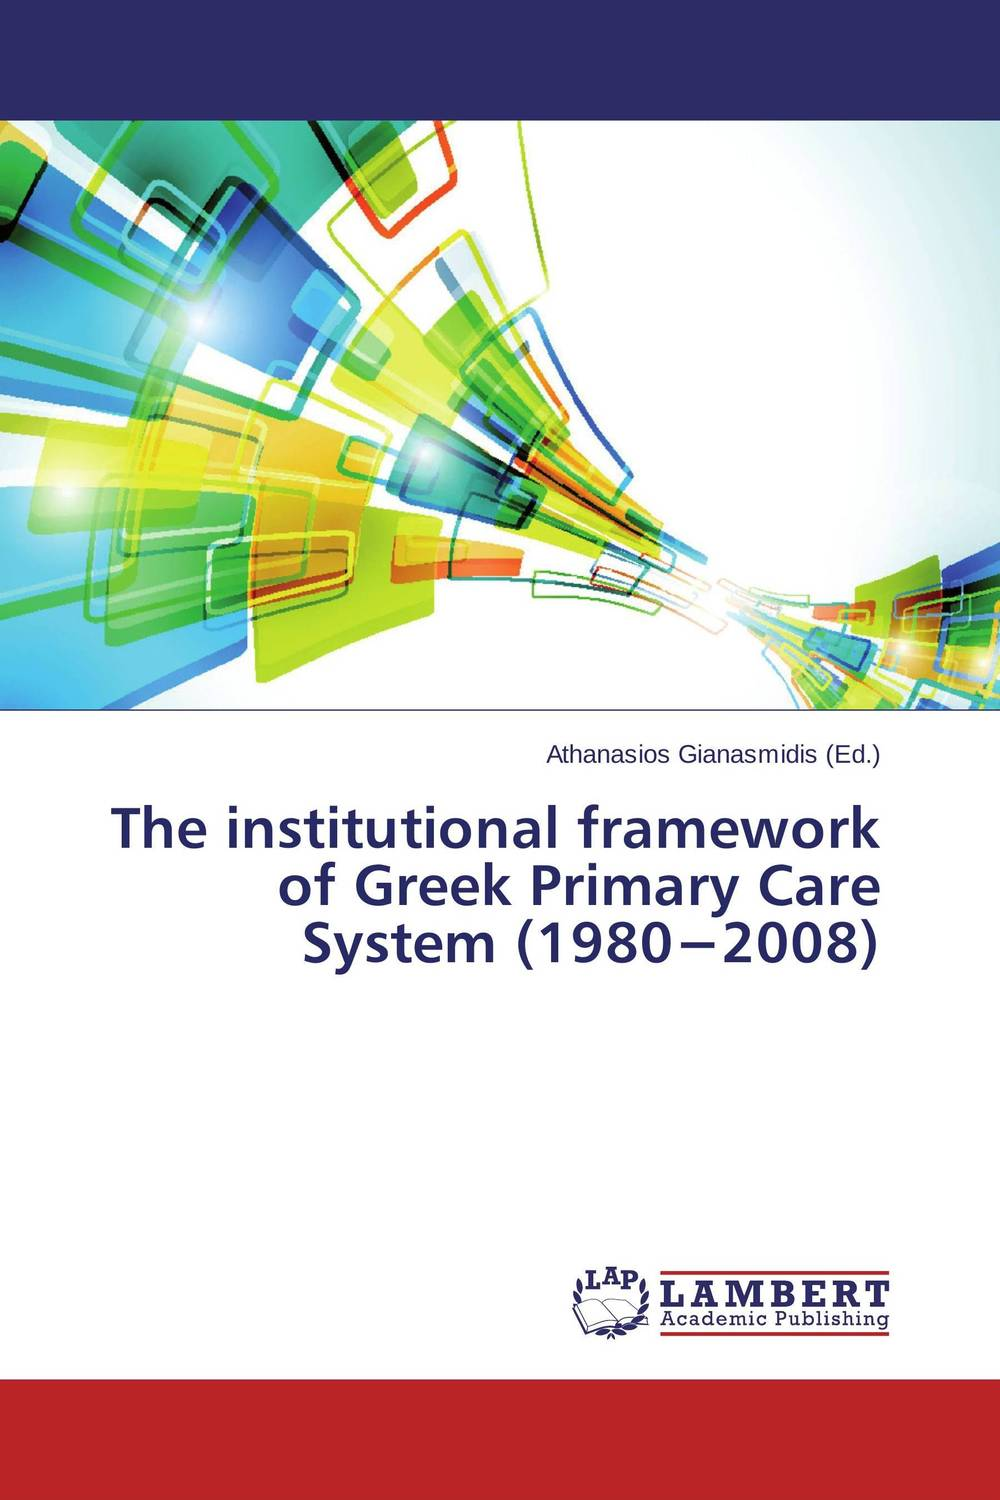 The institutional framework of Greek Primary Care System (1980?2008)